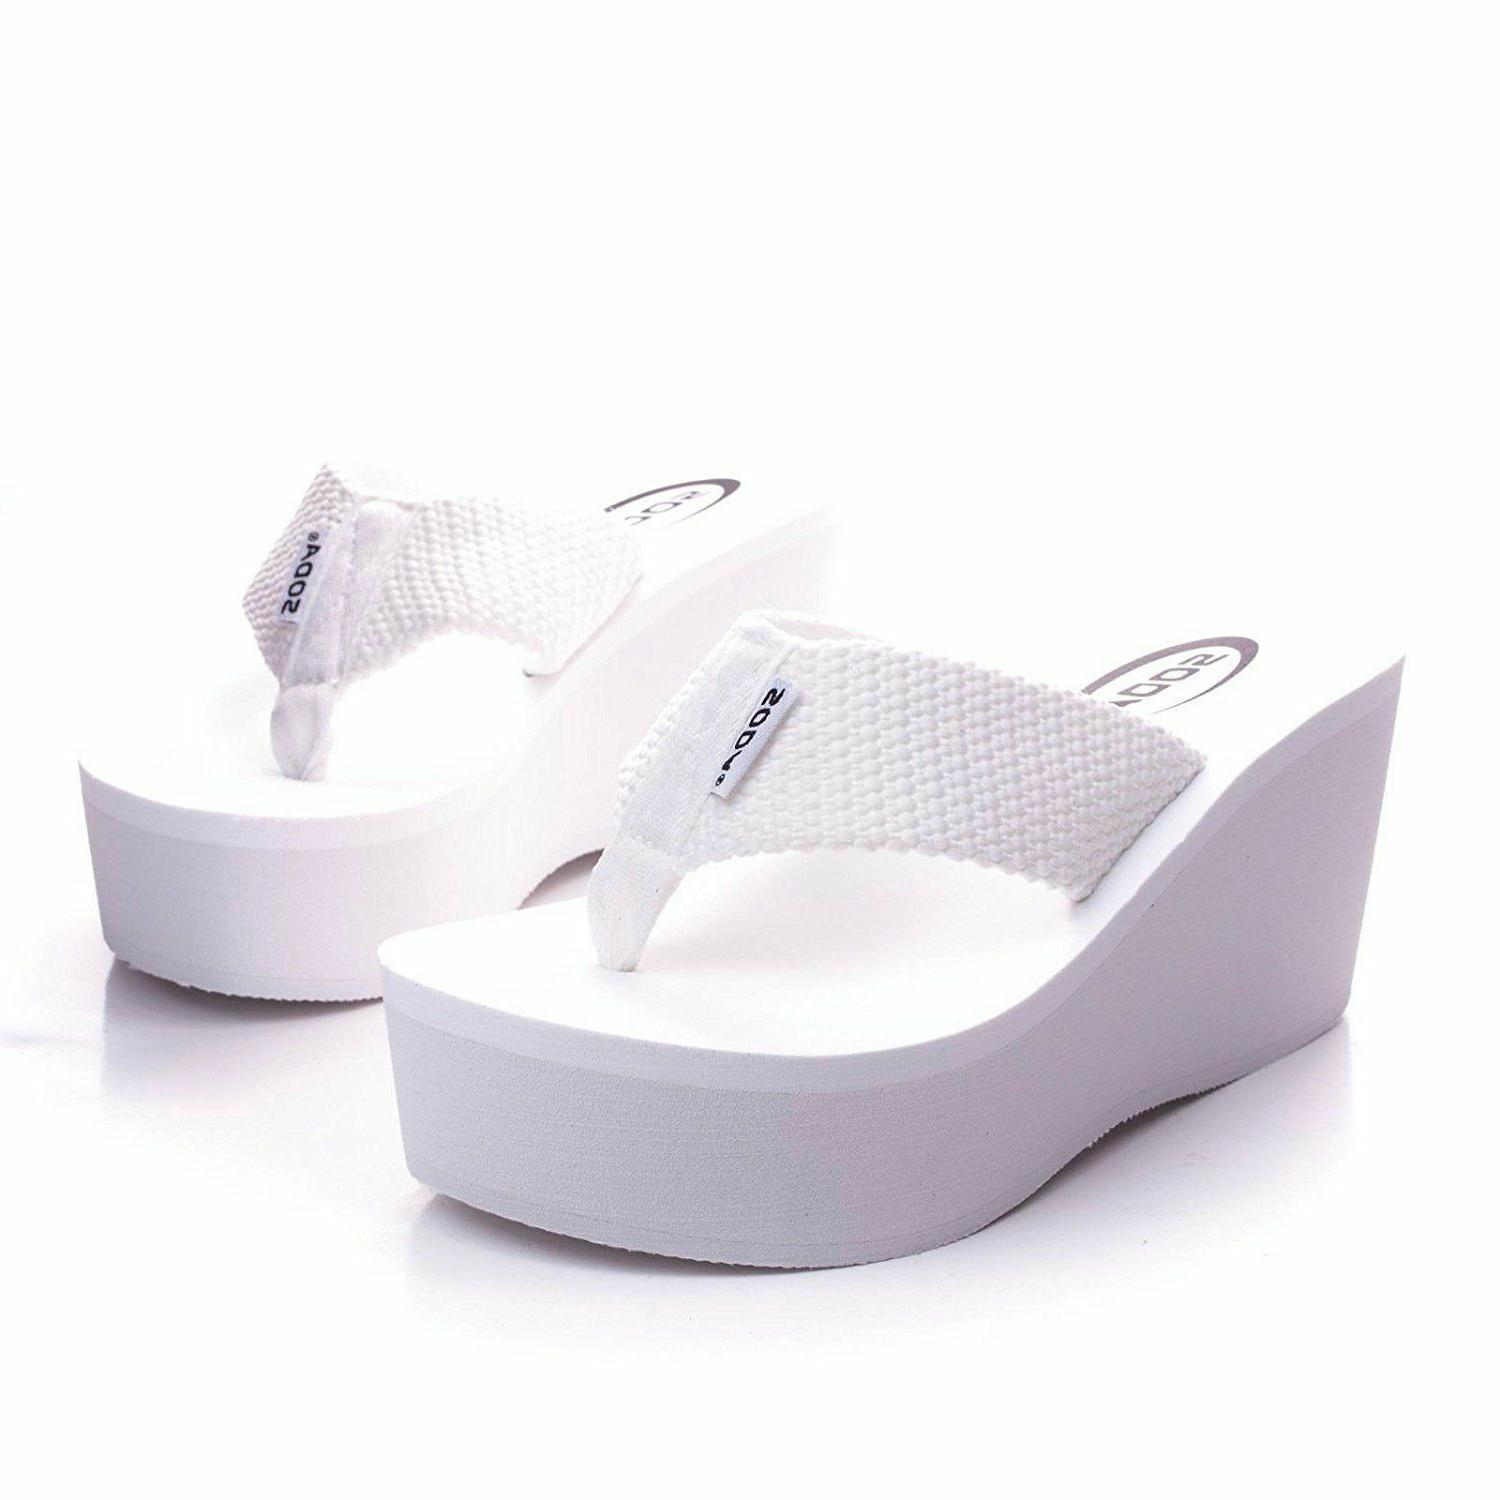 WEDGE WEBBING PLATFORM SANDALS